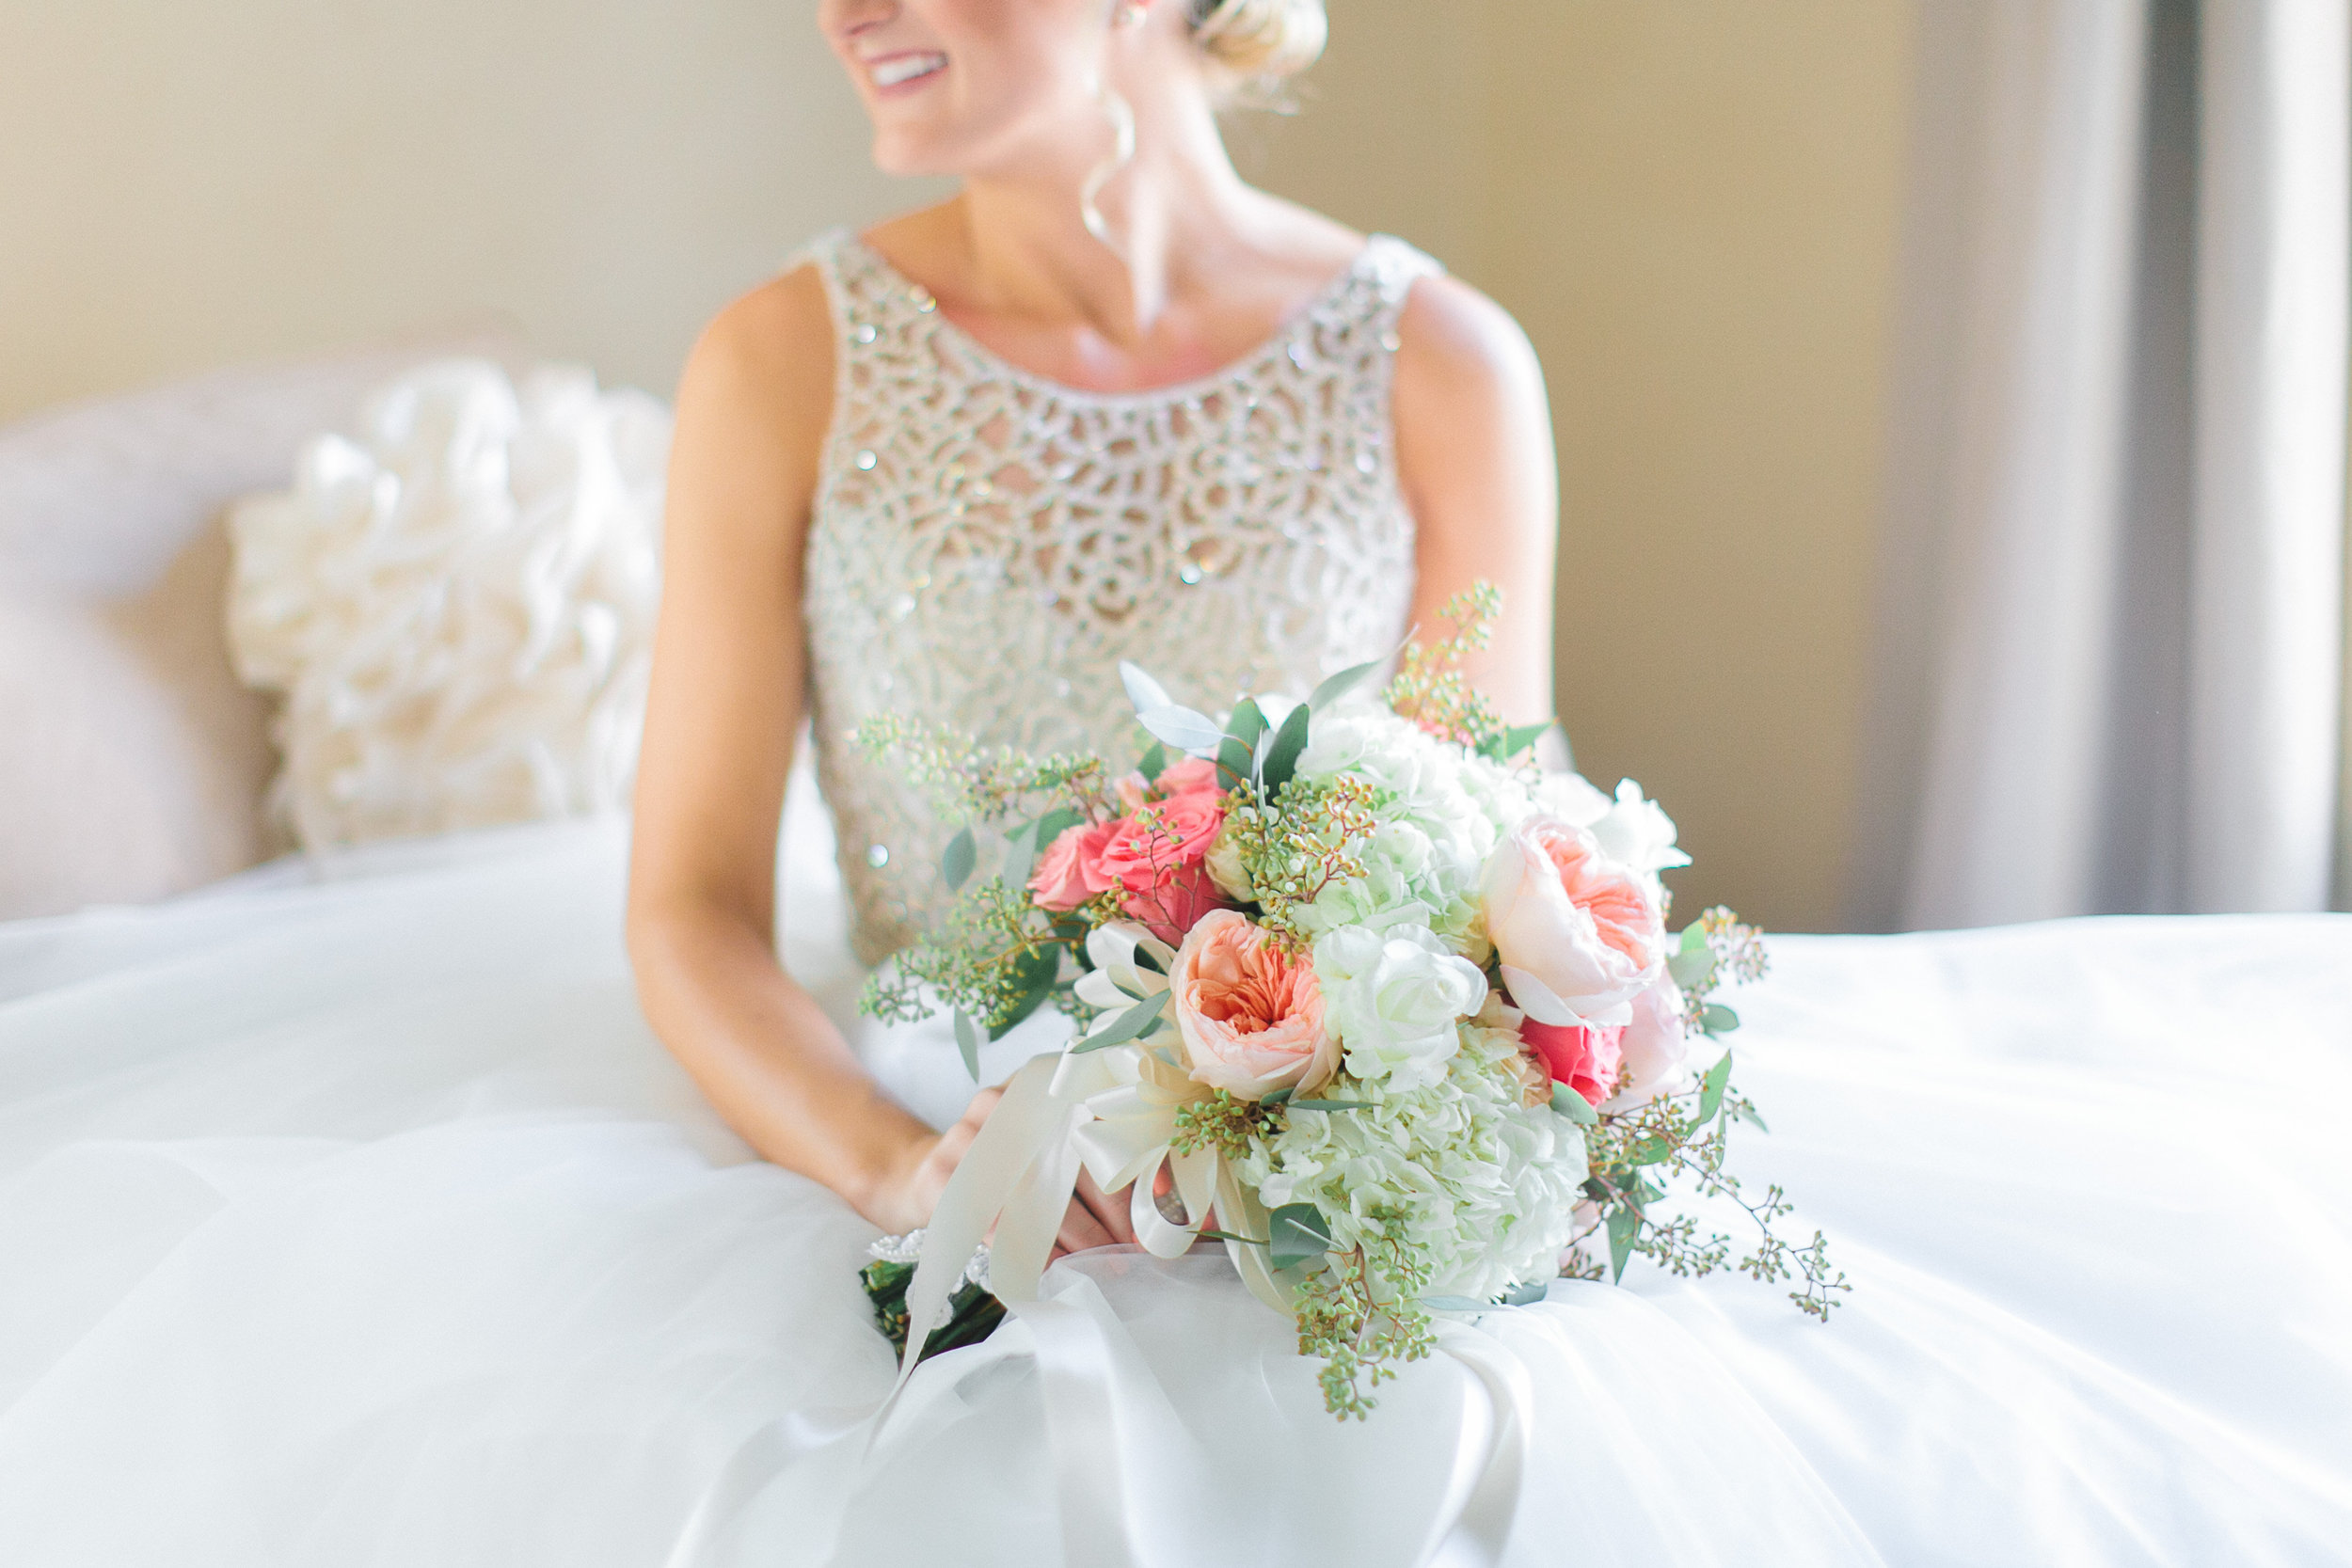 wedding, arizona wedding, wedding dress, bride, wedding planner, phoenix wedding planner, scottsdale wedding planner, blush wedding, wedding bouquet, bride, bridal bouquet